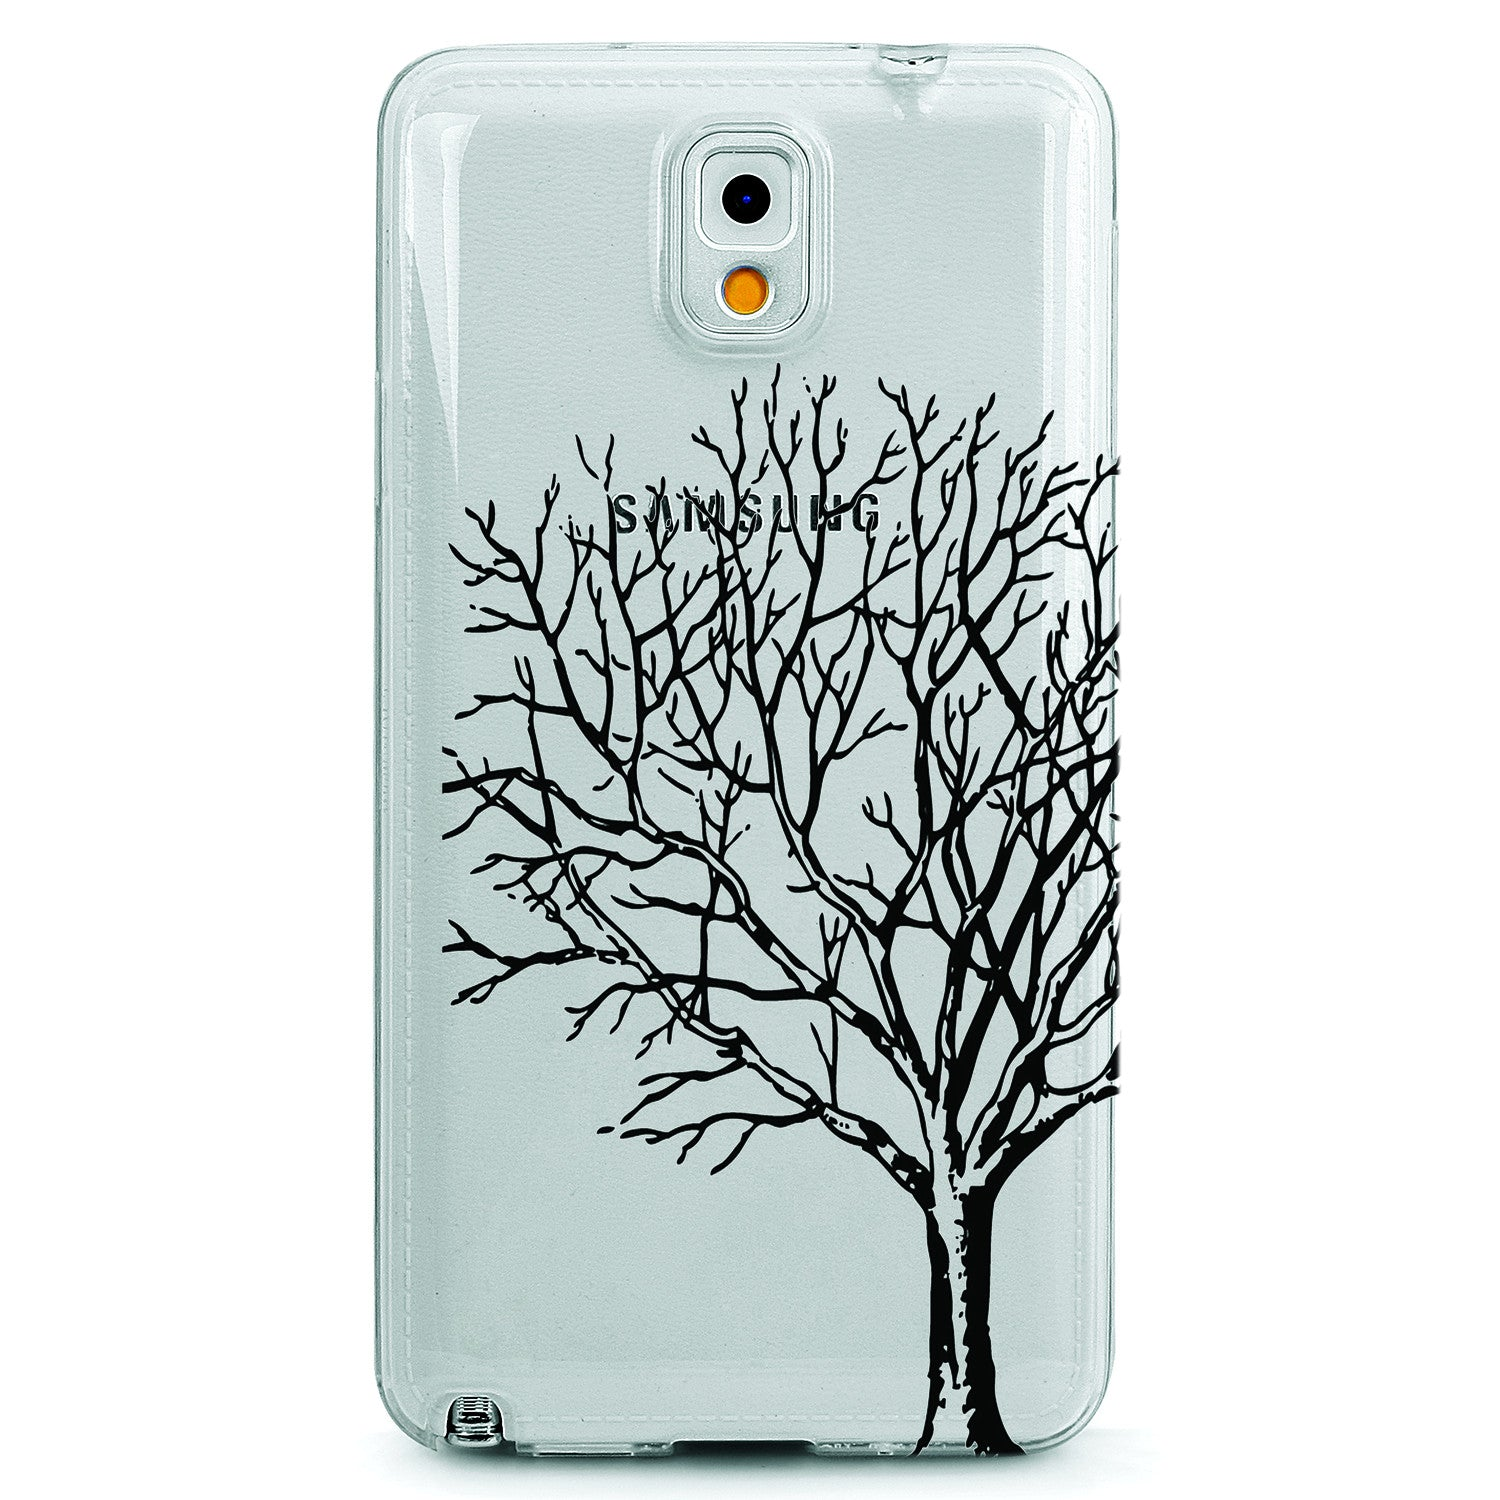 Cherry blossom tree branches clear tpu case cover for for Case design